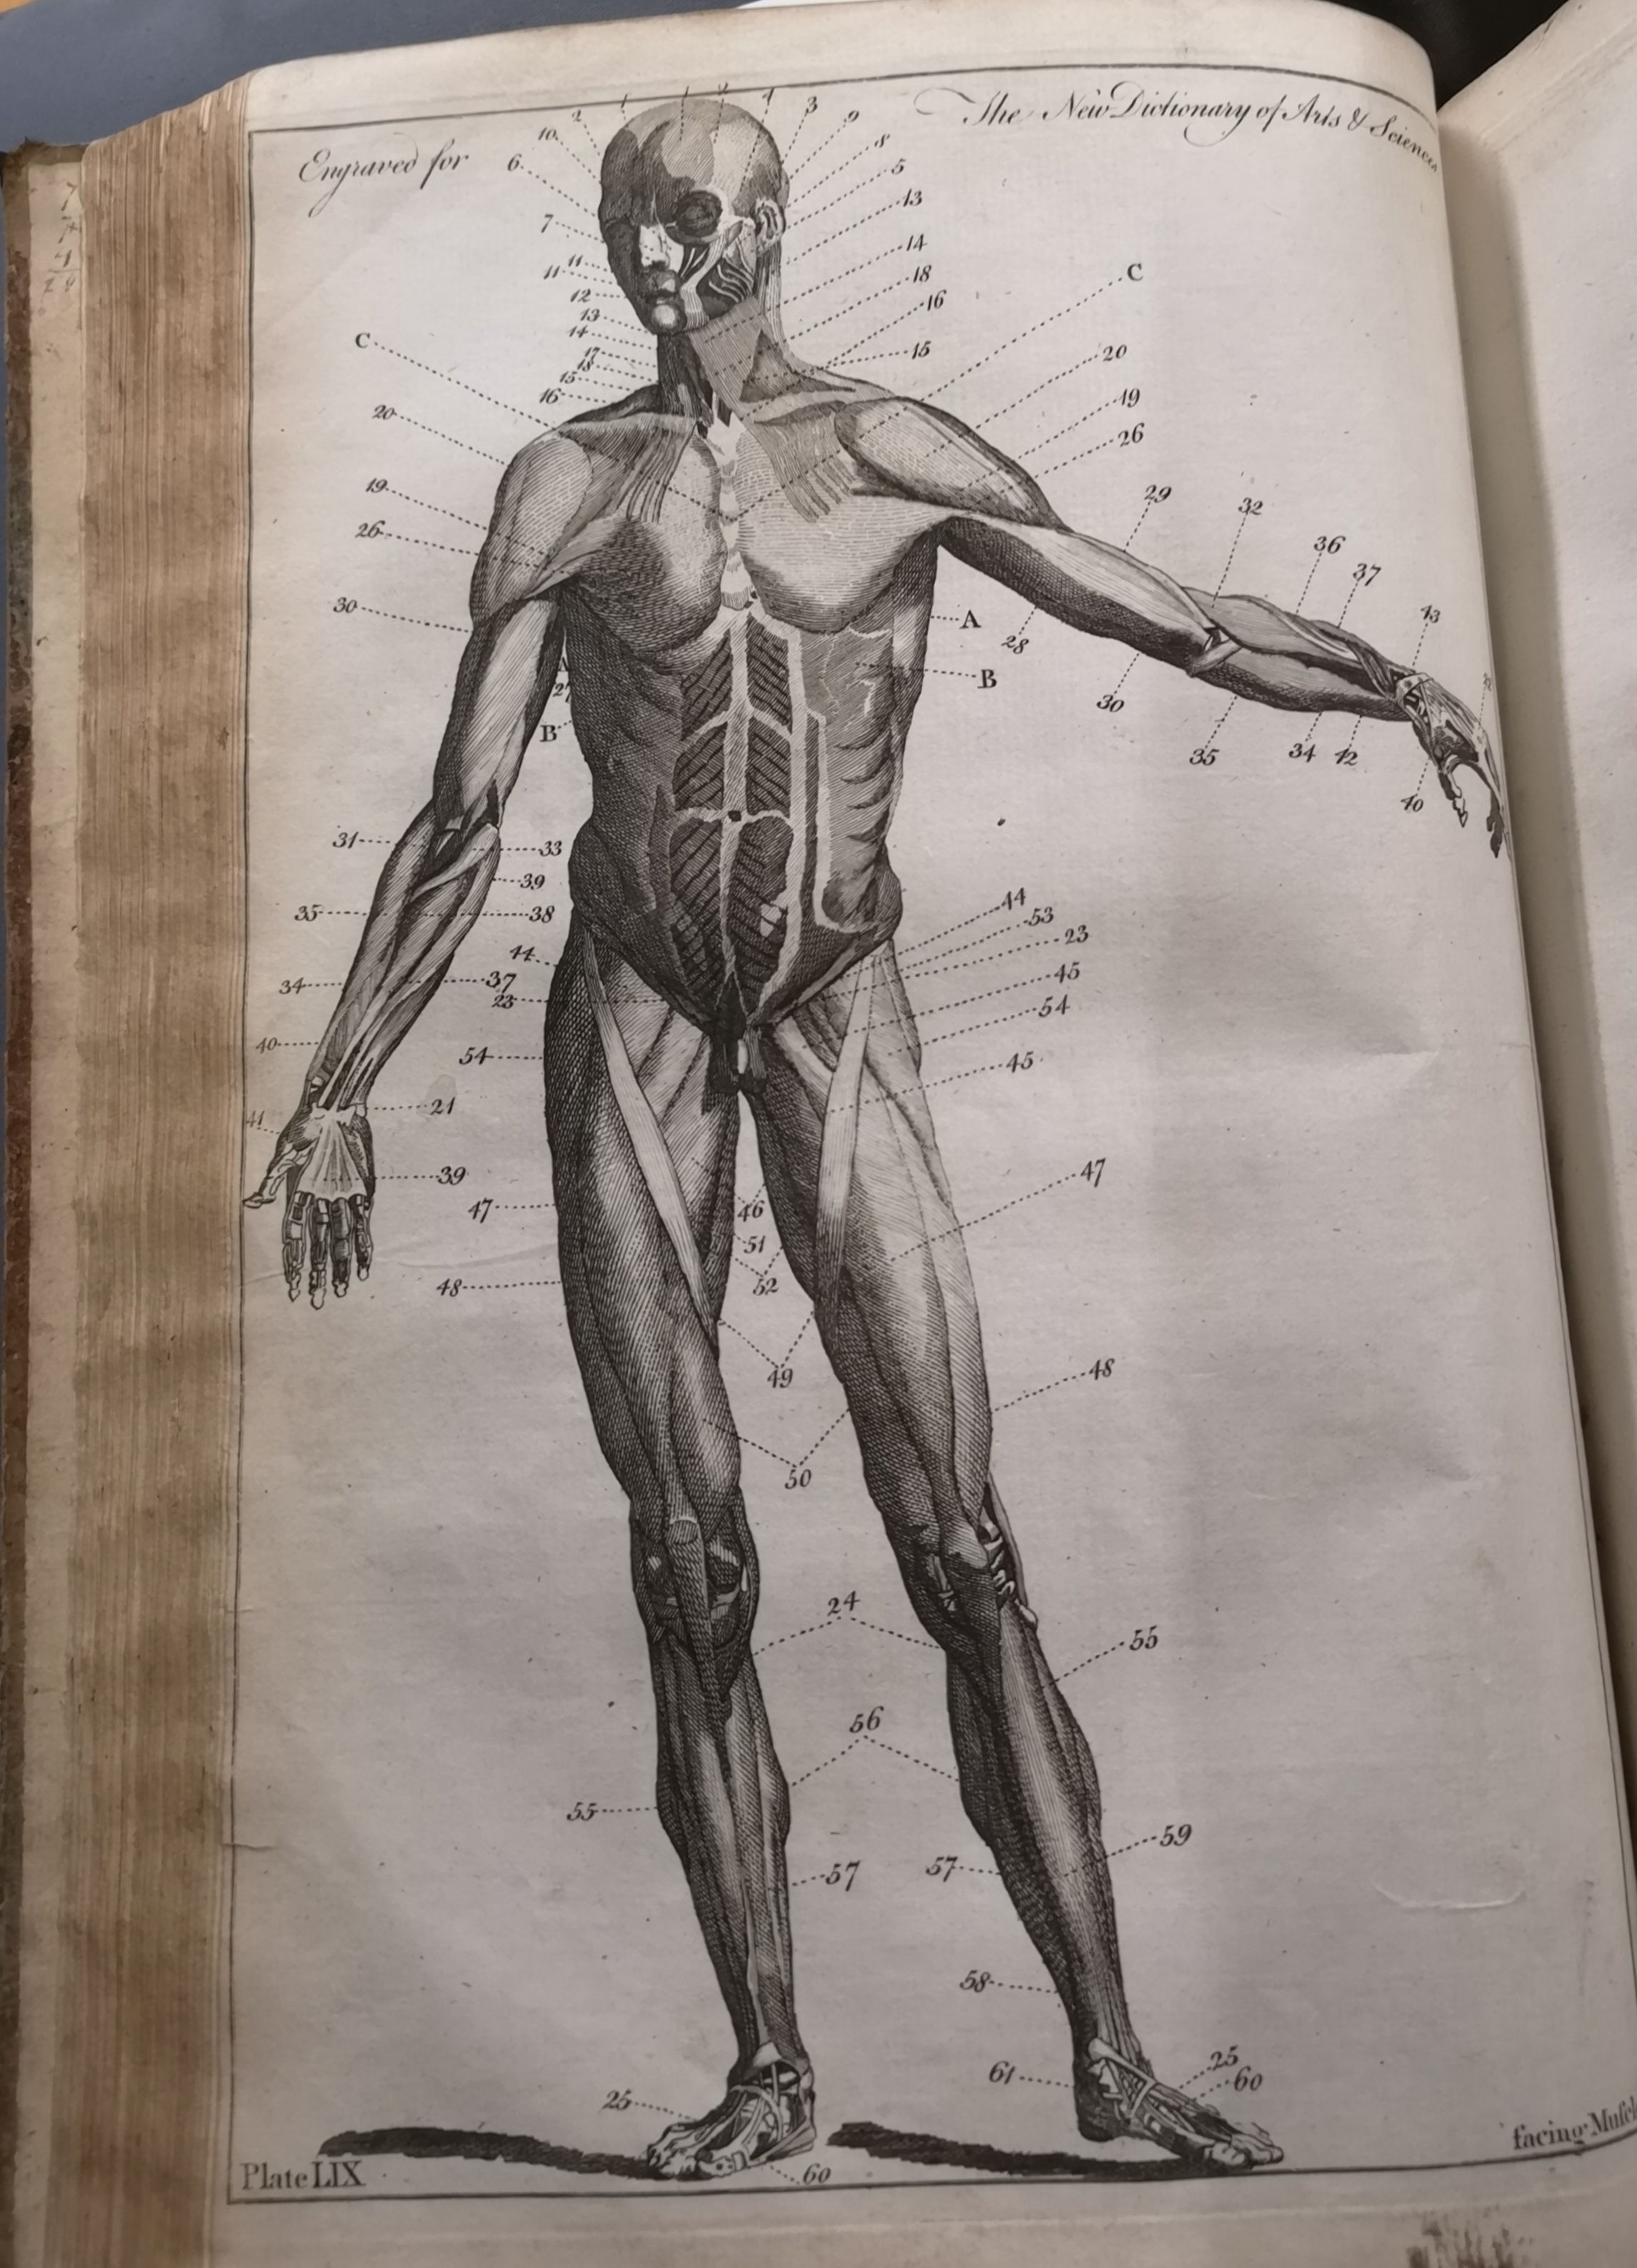 Anatomical drawing of man